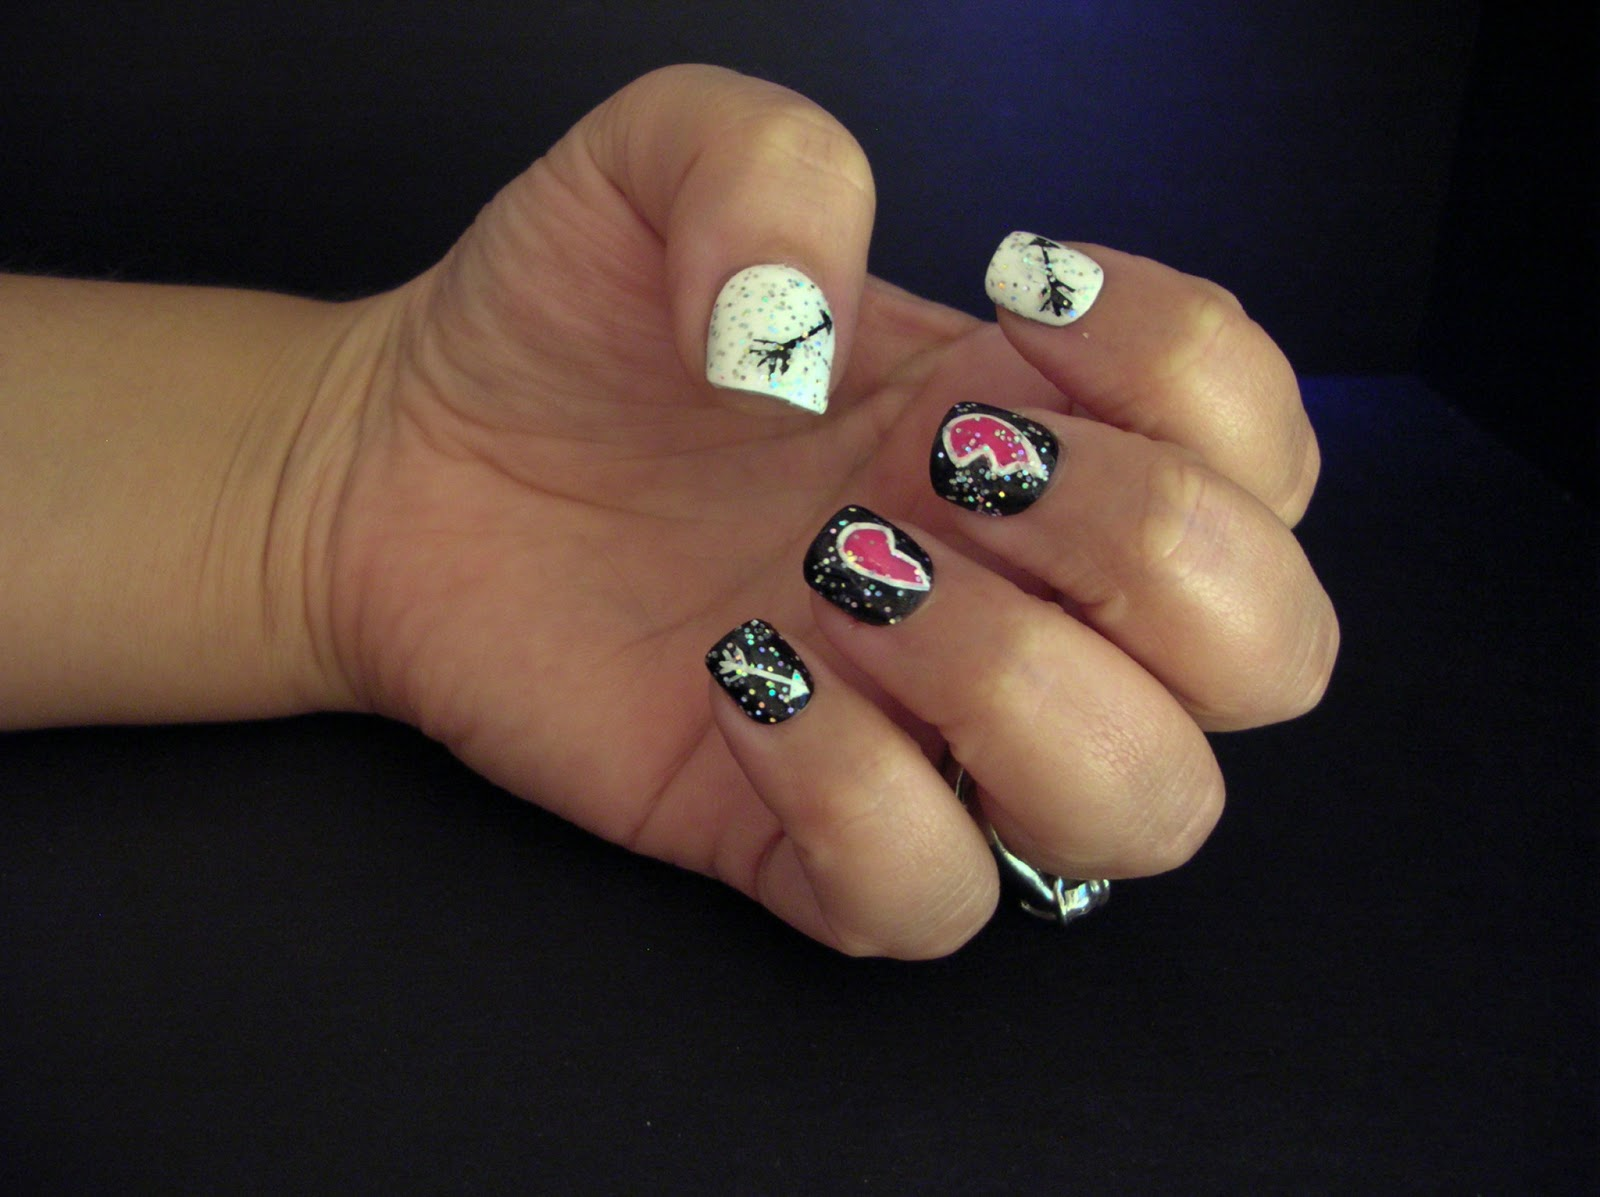 Cupid valentines day nails cupid valentines day nails 370 best ecklipsed by color valentines day nail art challenge cupids curse cupid nail art prinsesfo Images